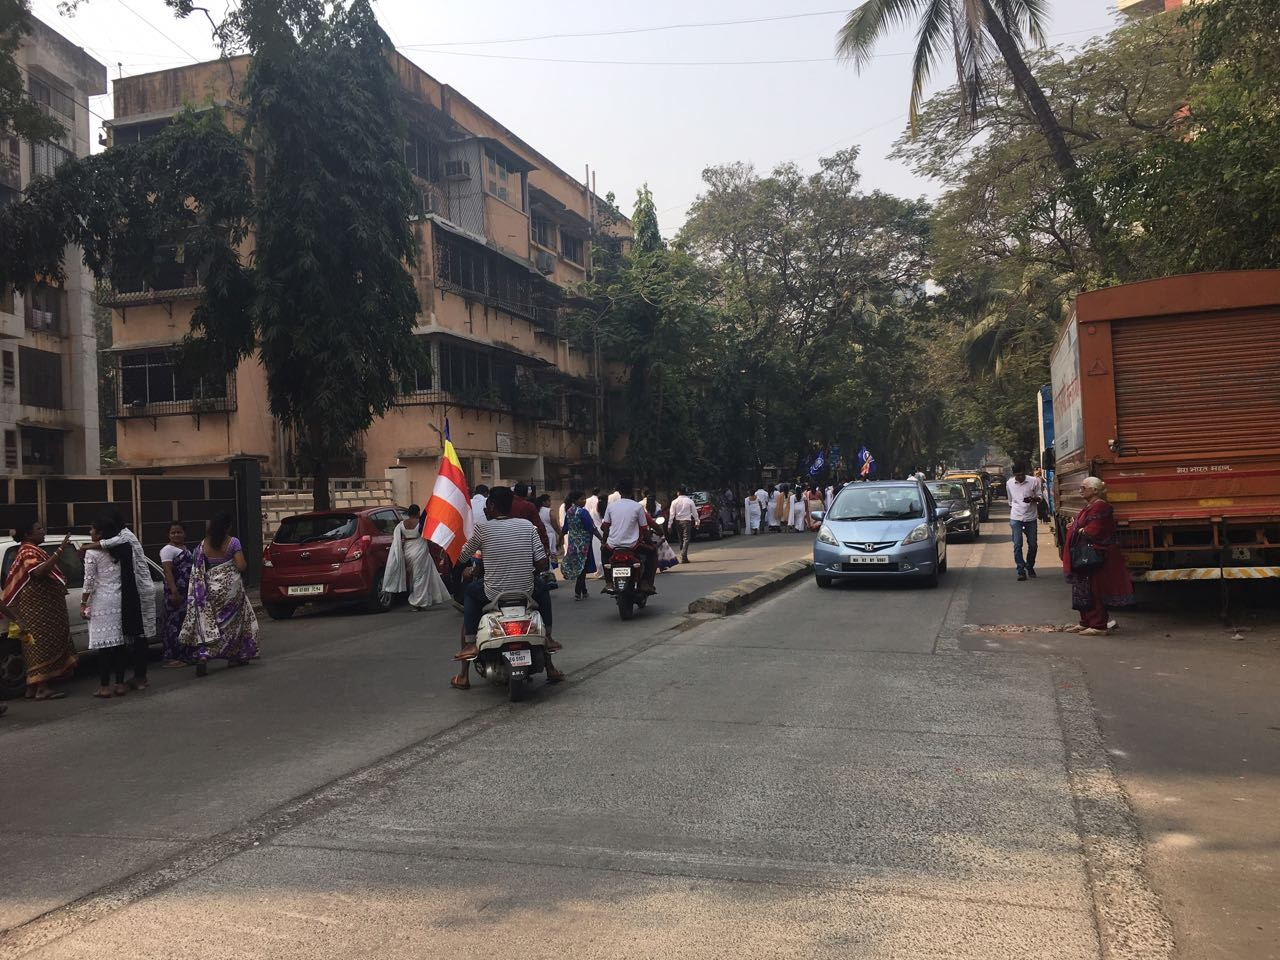 Activists gathered in Khar on Wednesday afternoon, joining the statewide protests against the attack on Dalits visiting Bhima Koregaon. (Sruthi Ganapathy Raman/Scroll.in)